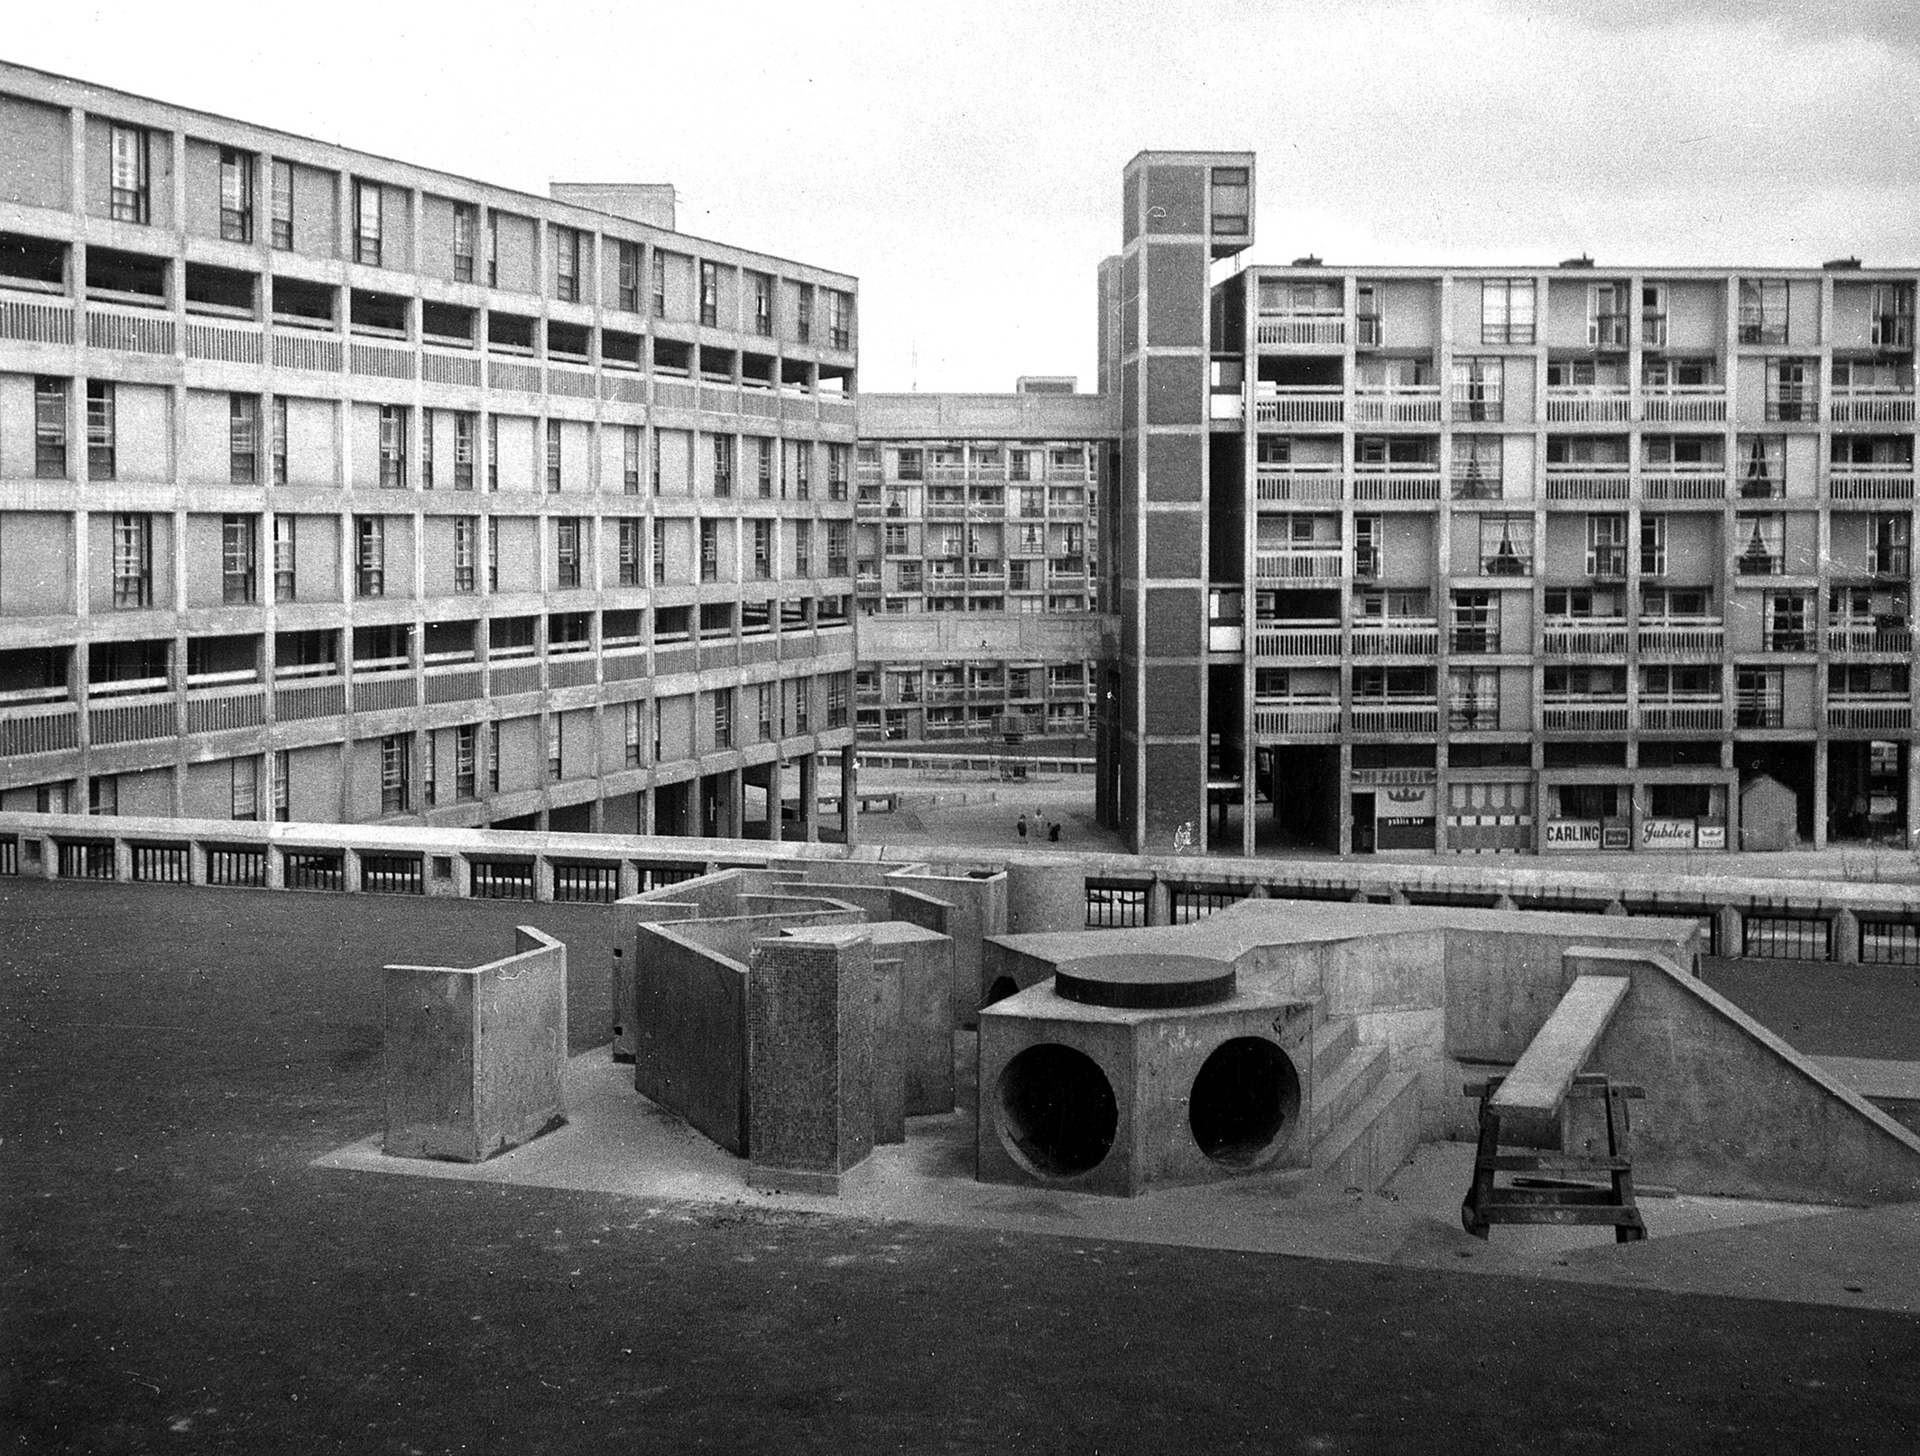 Park Hill estate, Sheffield, 1962